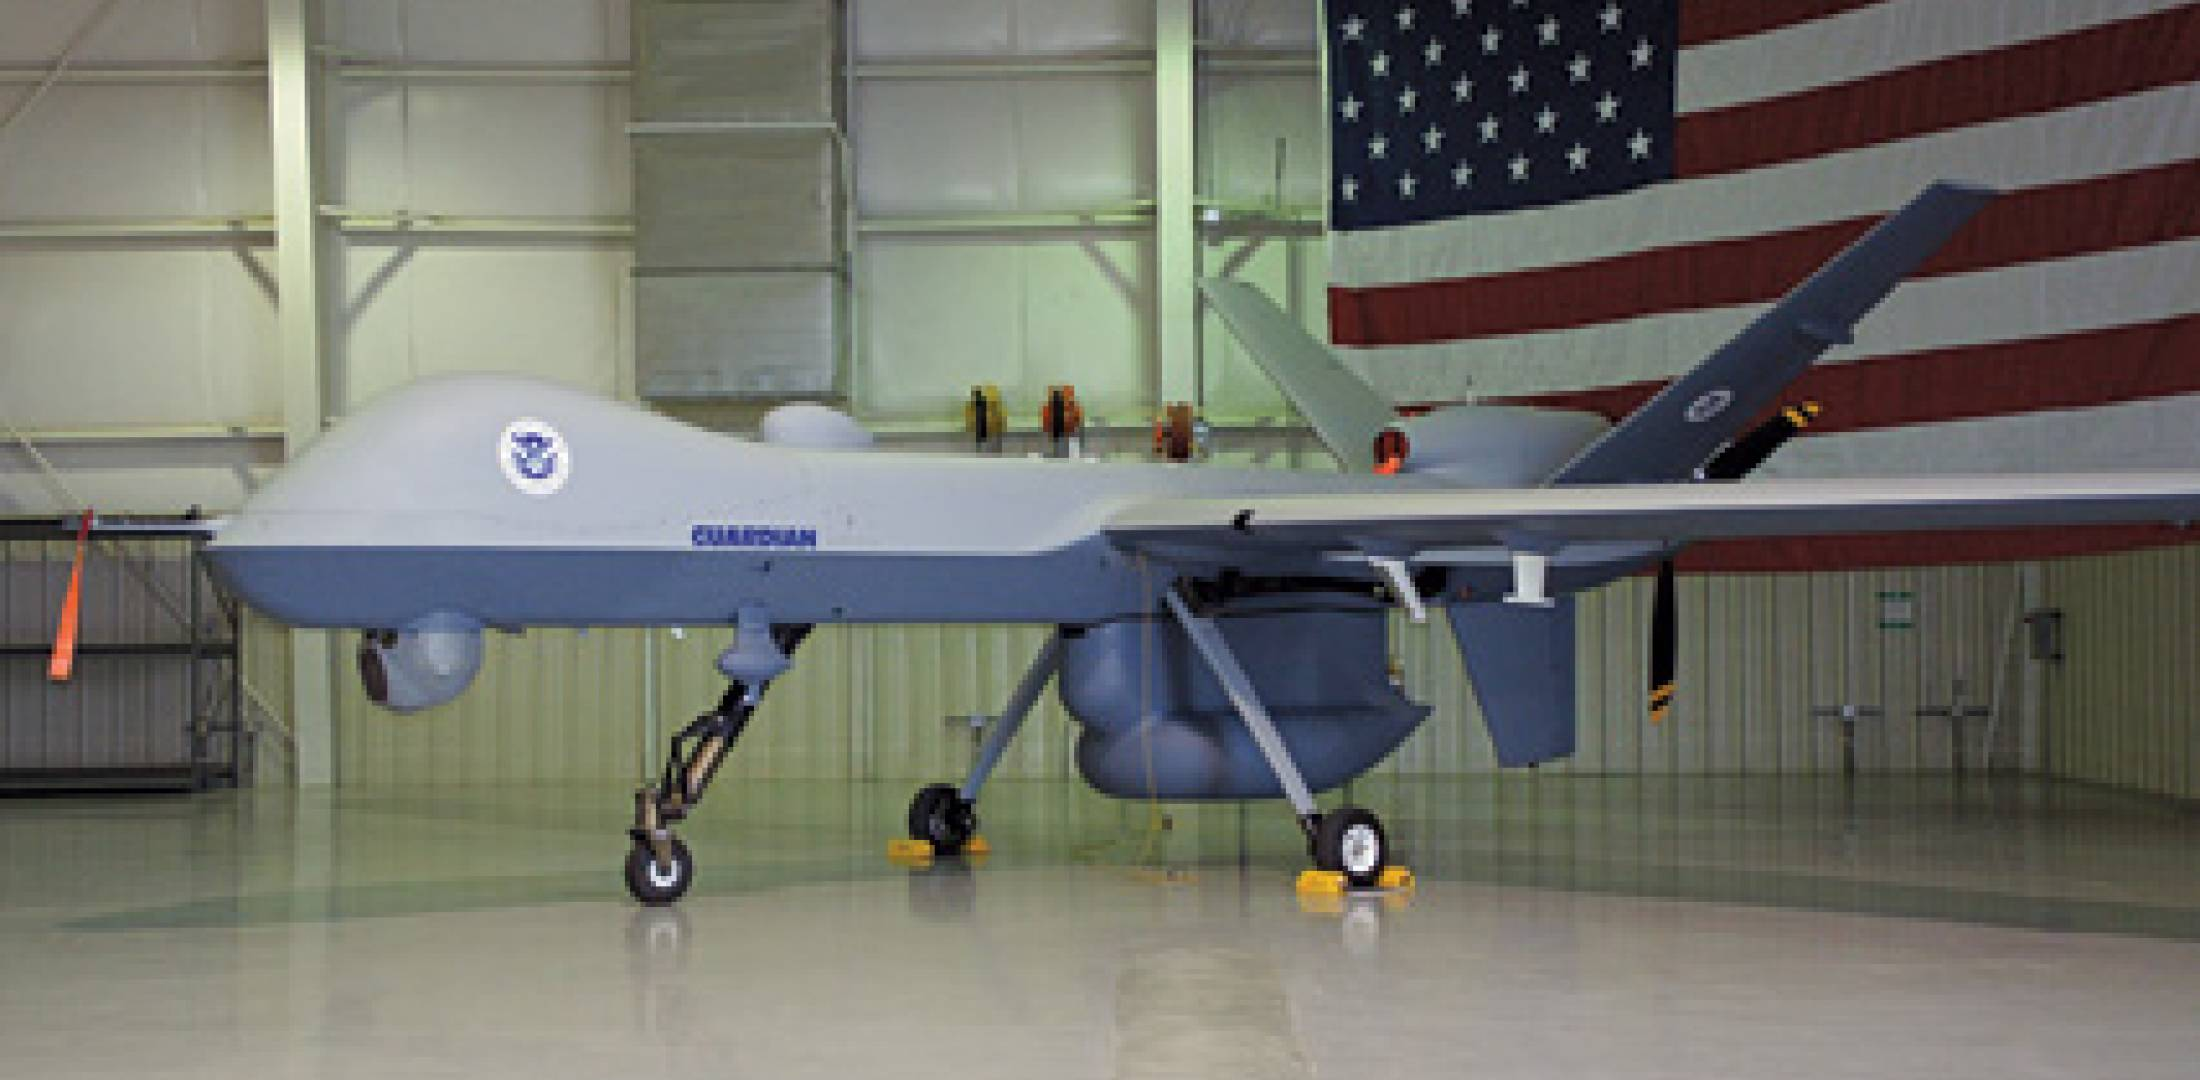 The U.S. Customs and Border Protection Agency uses Raytheon's SeaVue radar in...